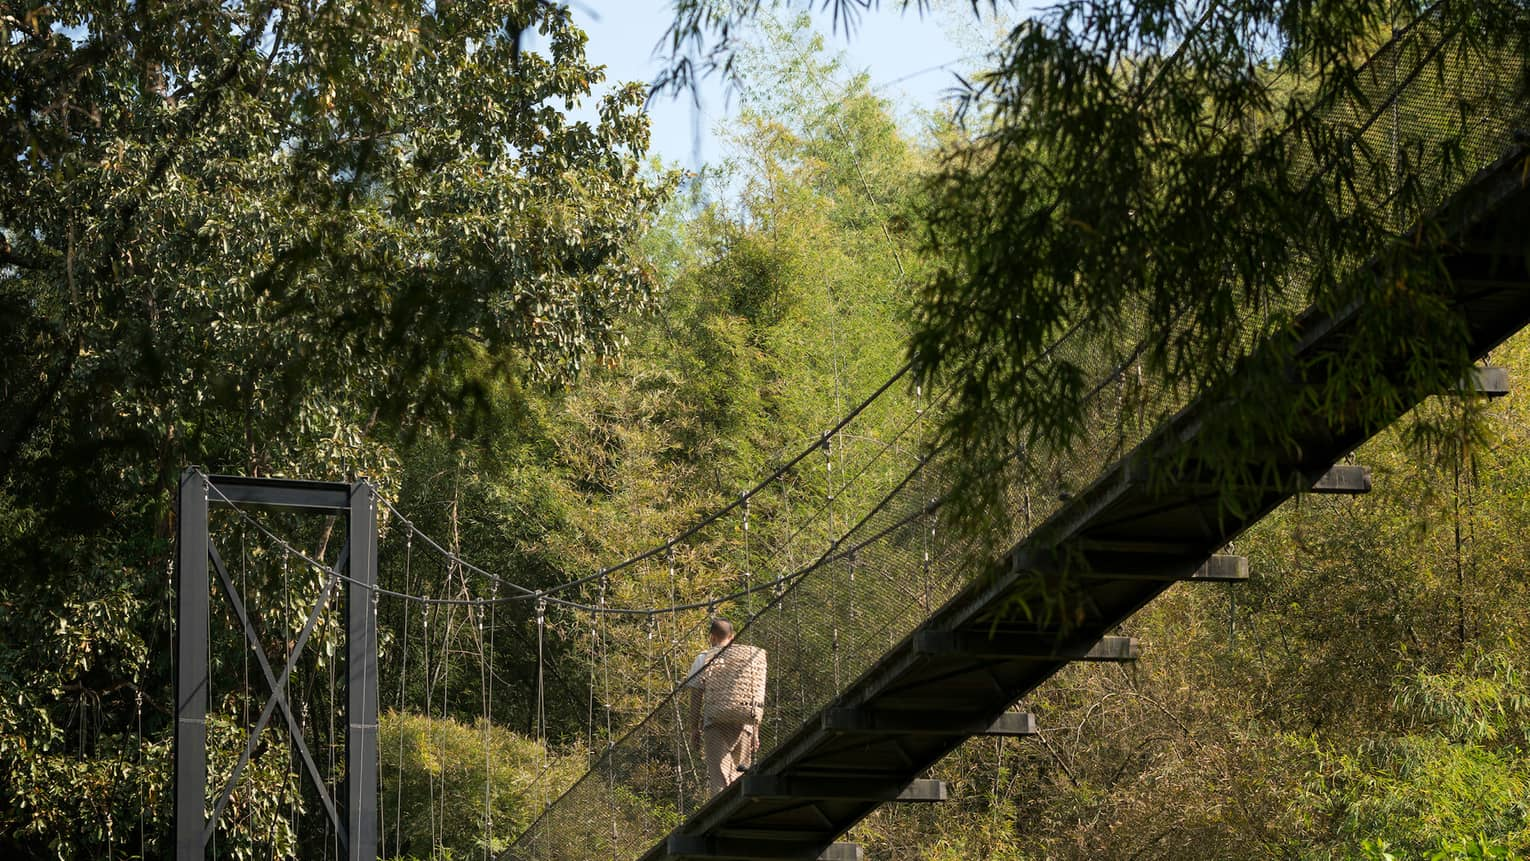 Man with woven basket on back walks across suspension bridge over tropical trees